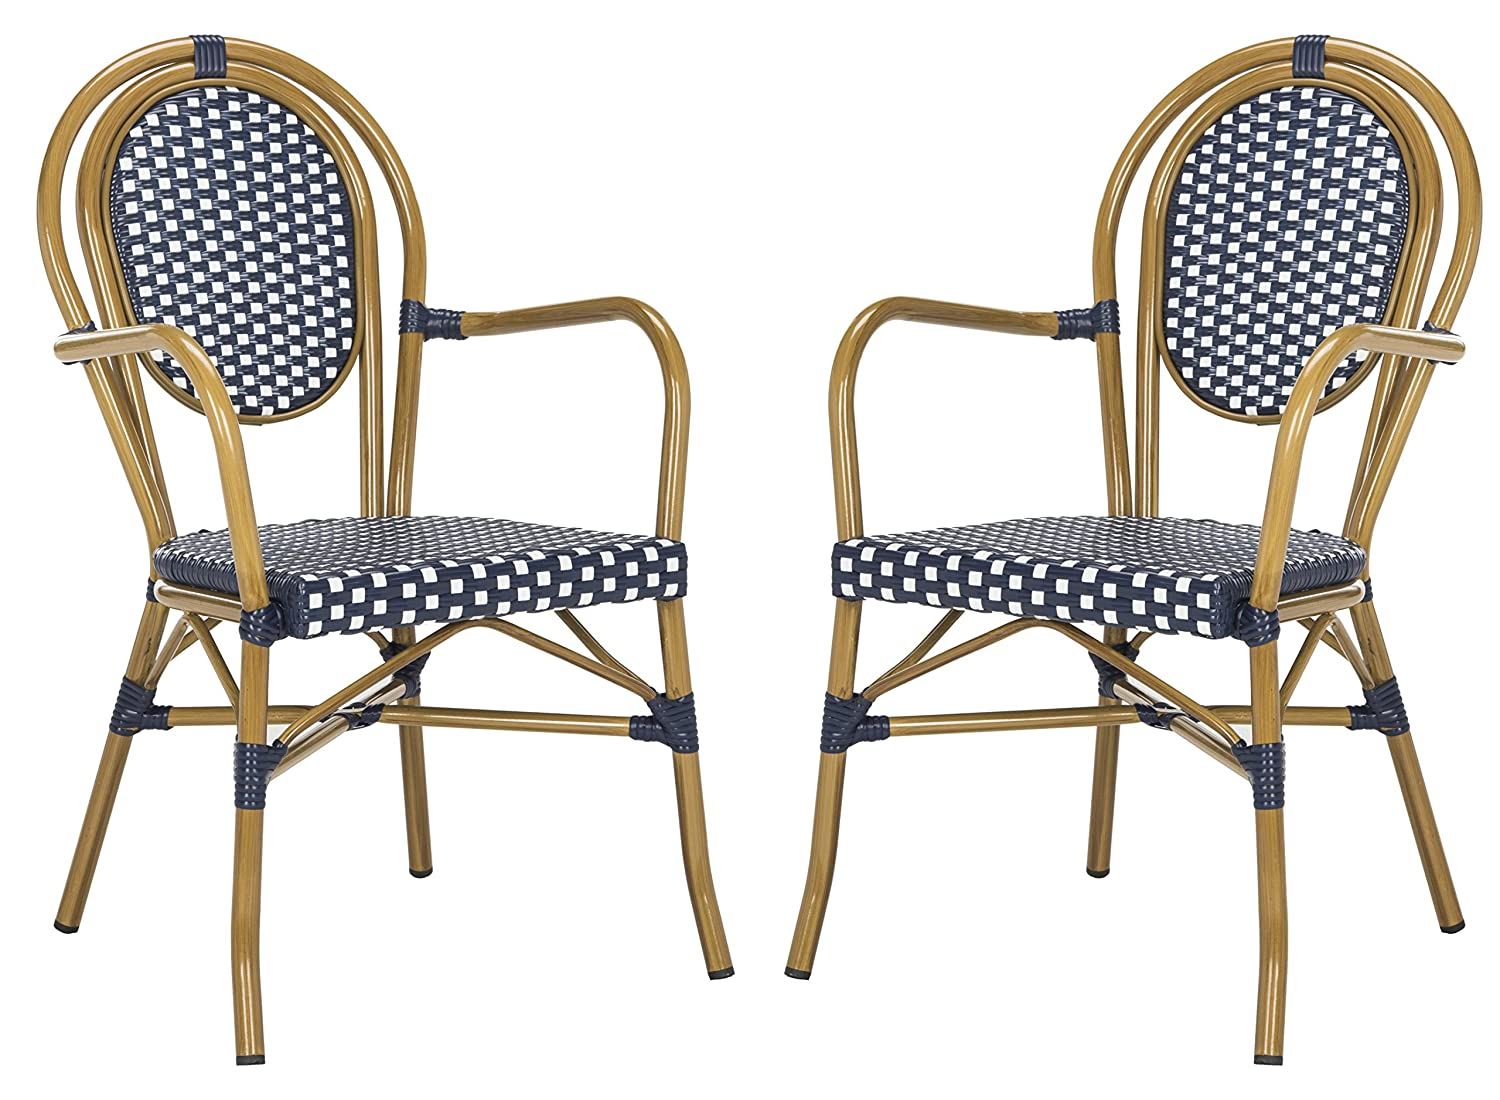 Safavieh Bistro chairs in navy and white